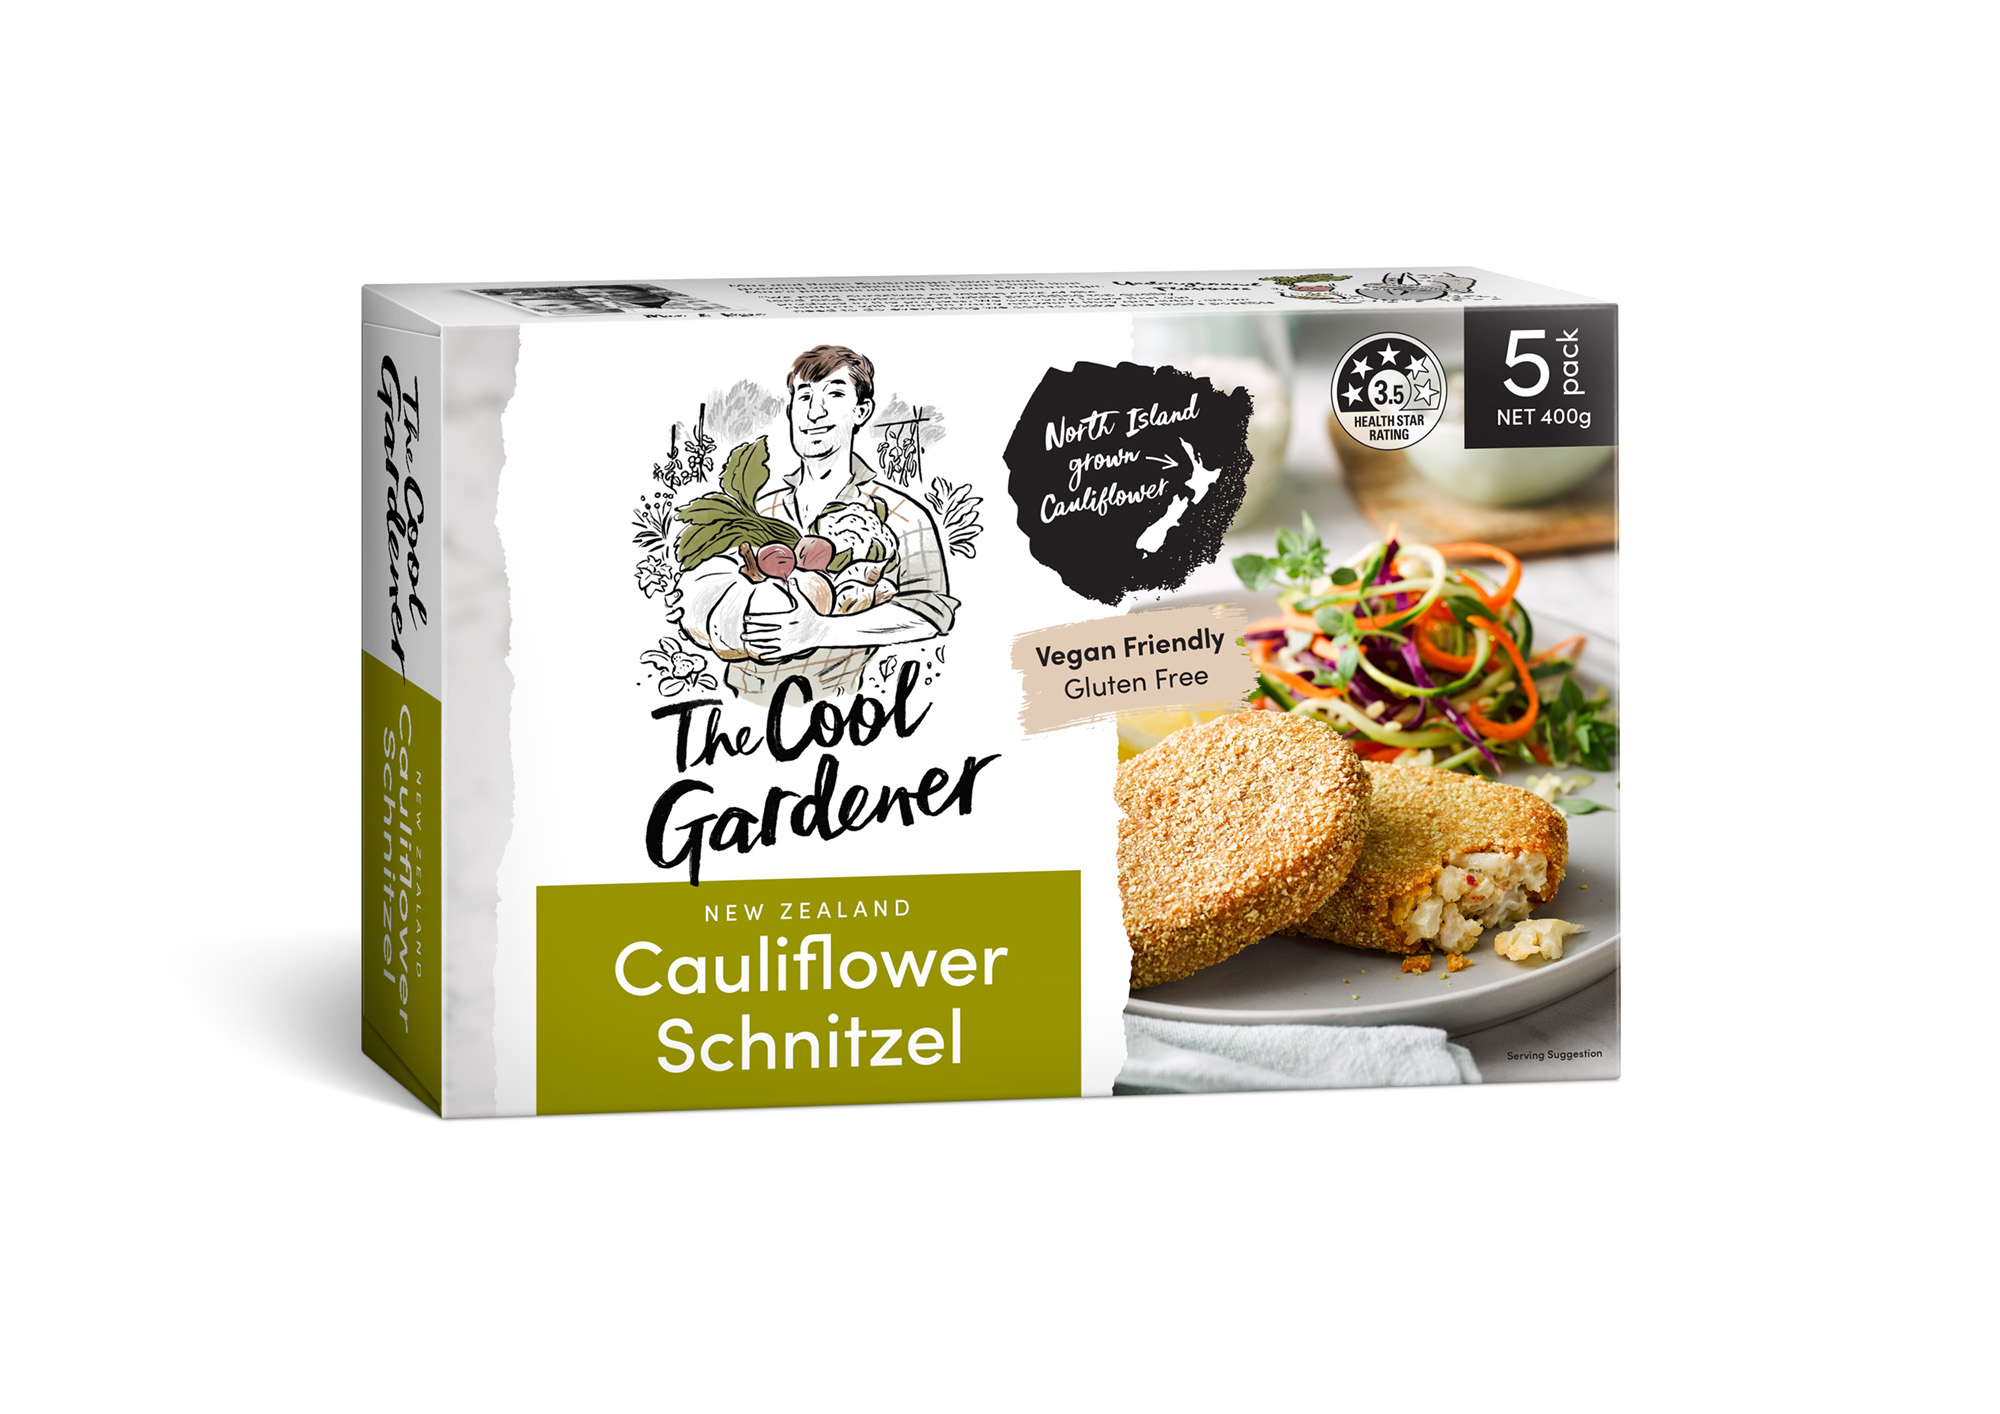 Cauliflower Schnitzel 400g copy.jpg